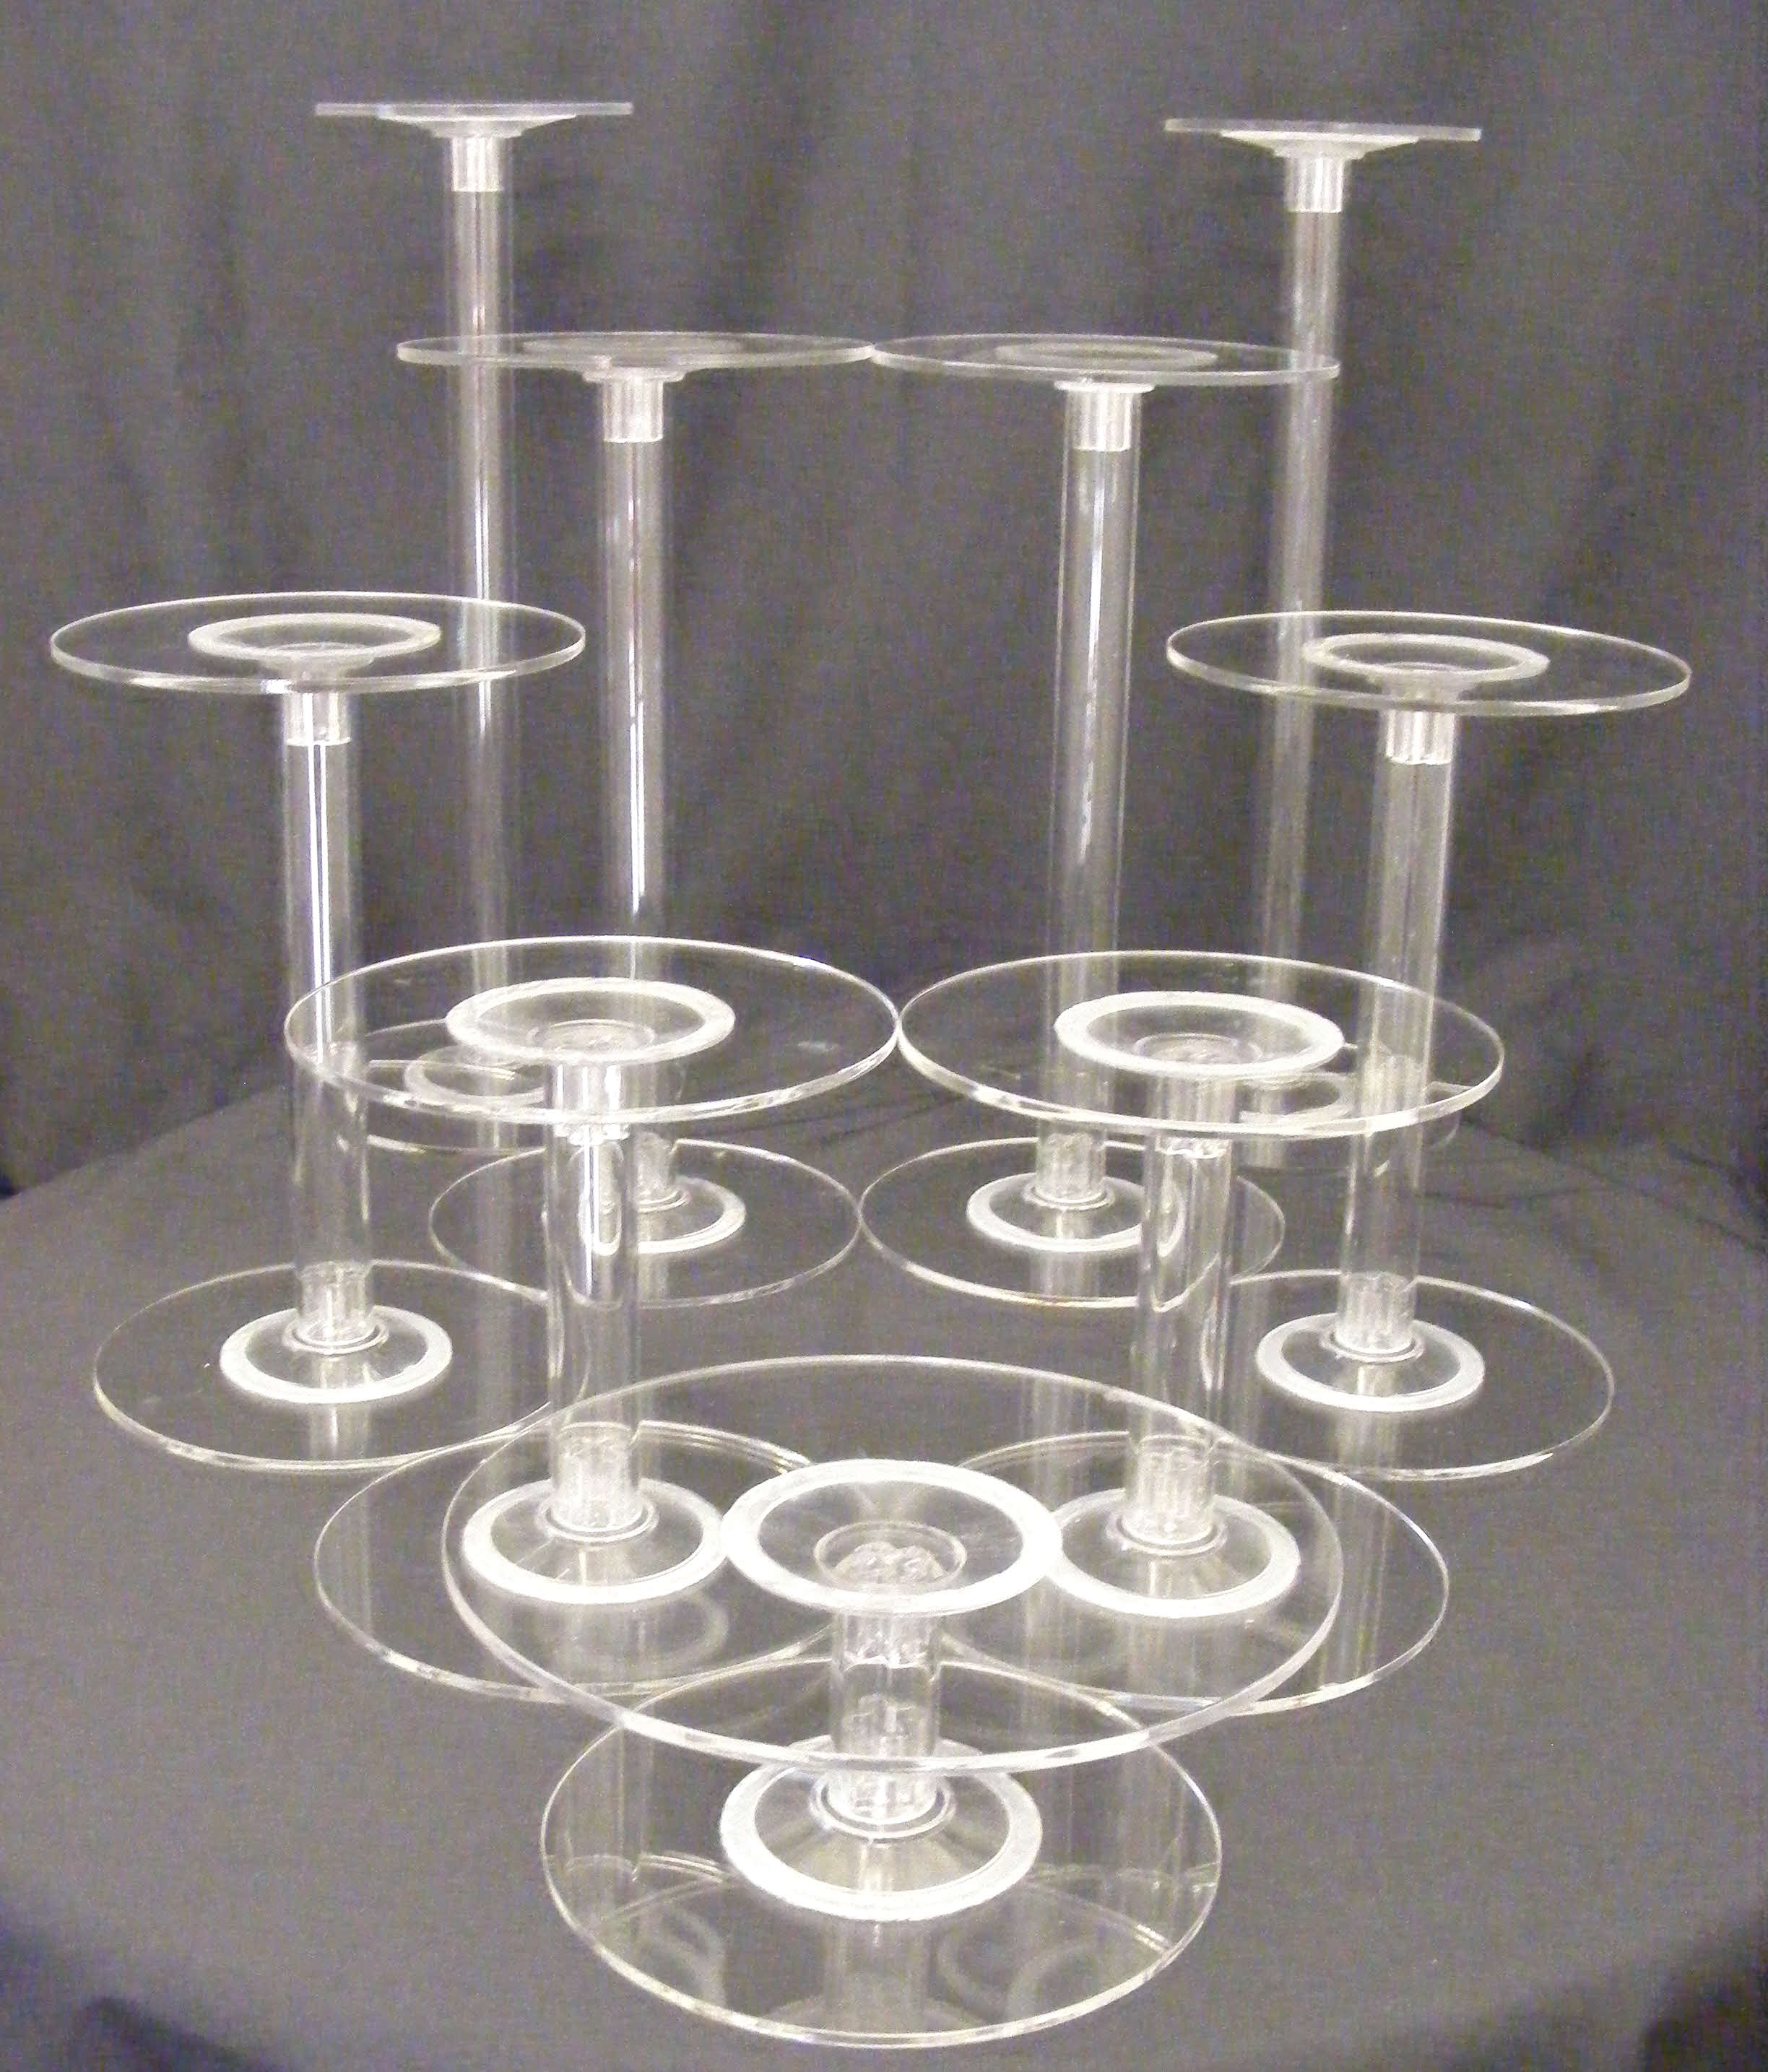 single tier wedding cake stands uk 1 10 tier cake stand arrangement hire barker 20153